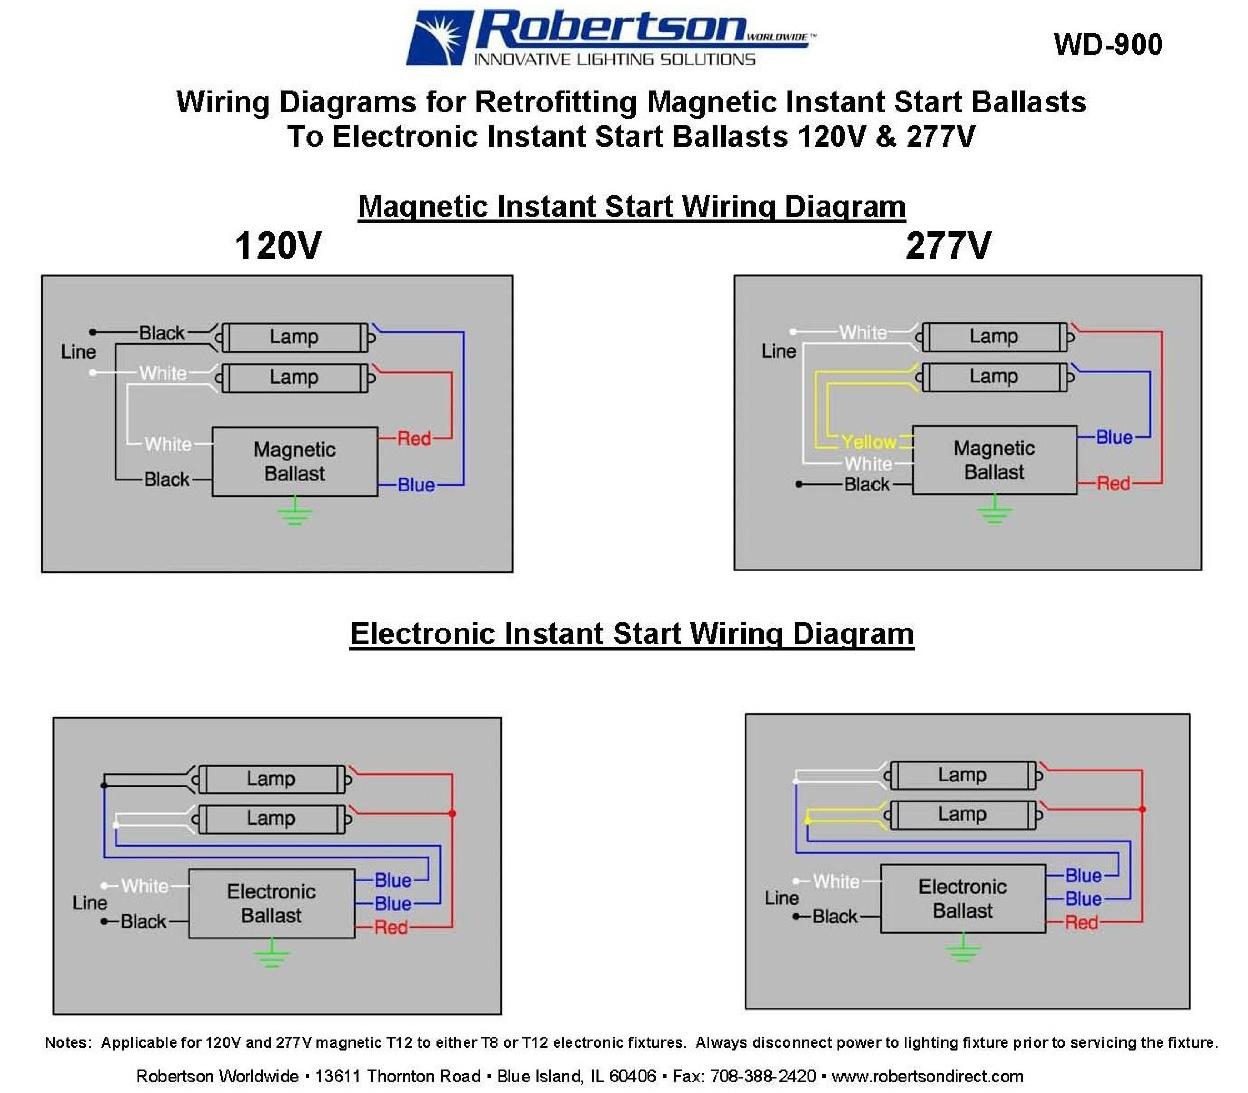 T8 Wiring Diagram - Wiring Diagram Online